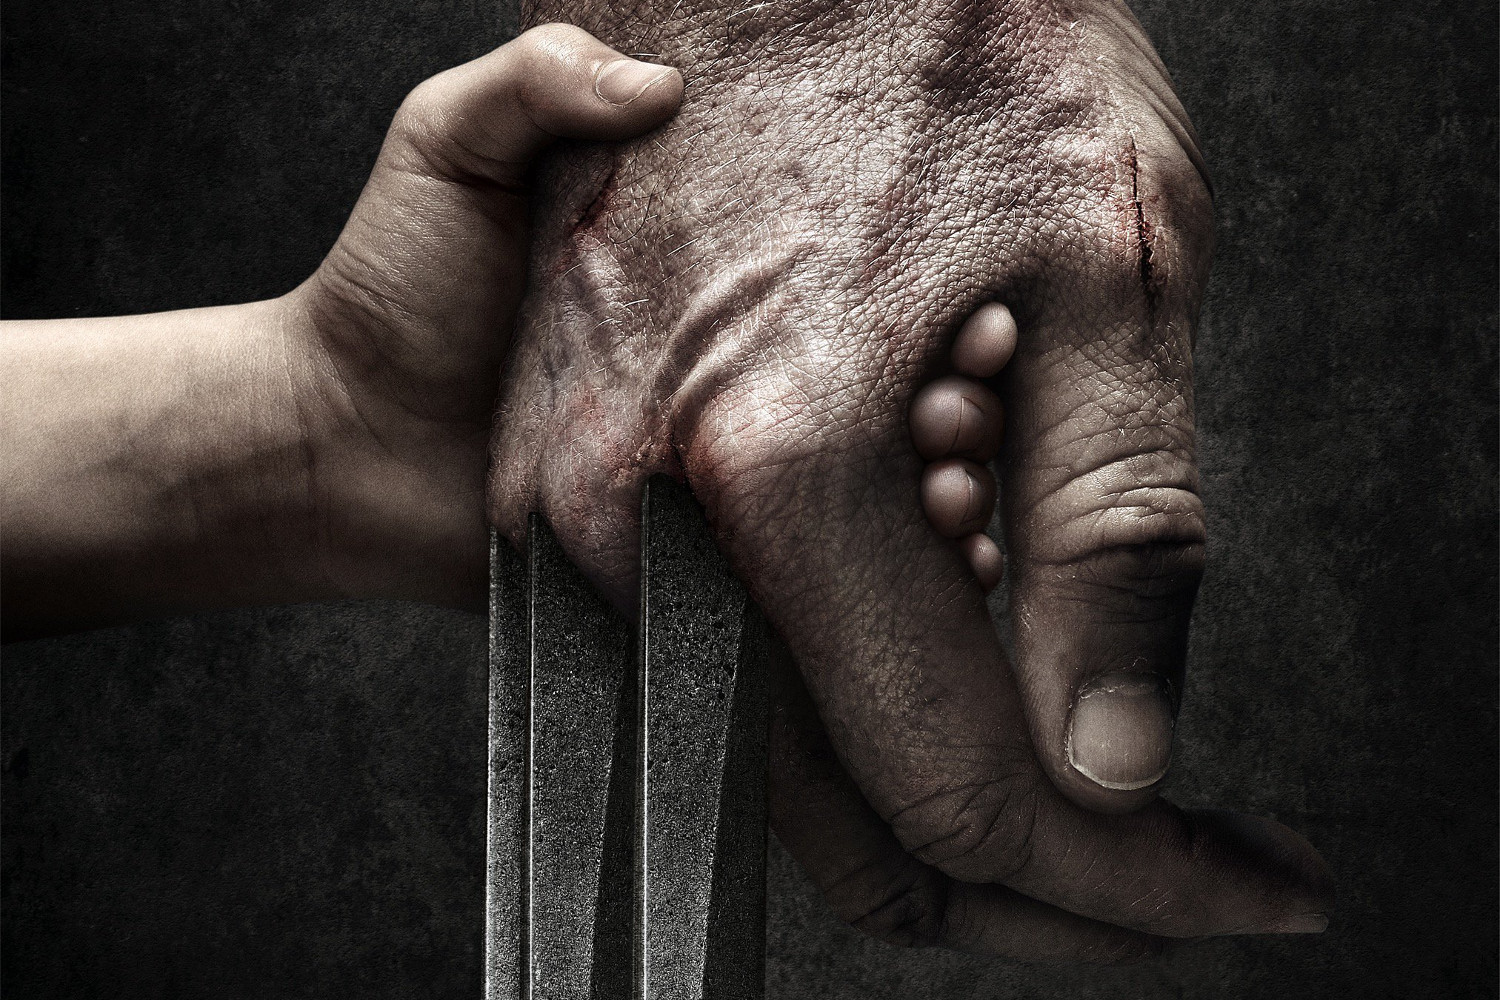 Watch the Heart-Rending First Trailer for 'Logan' Starring Hugh Jackman